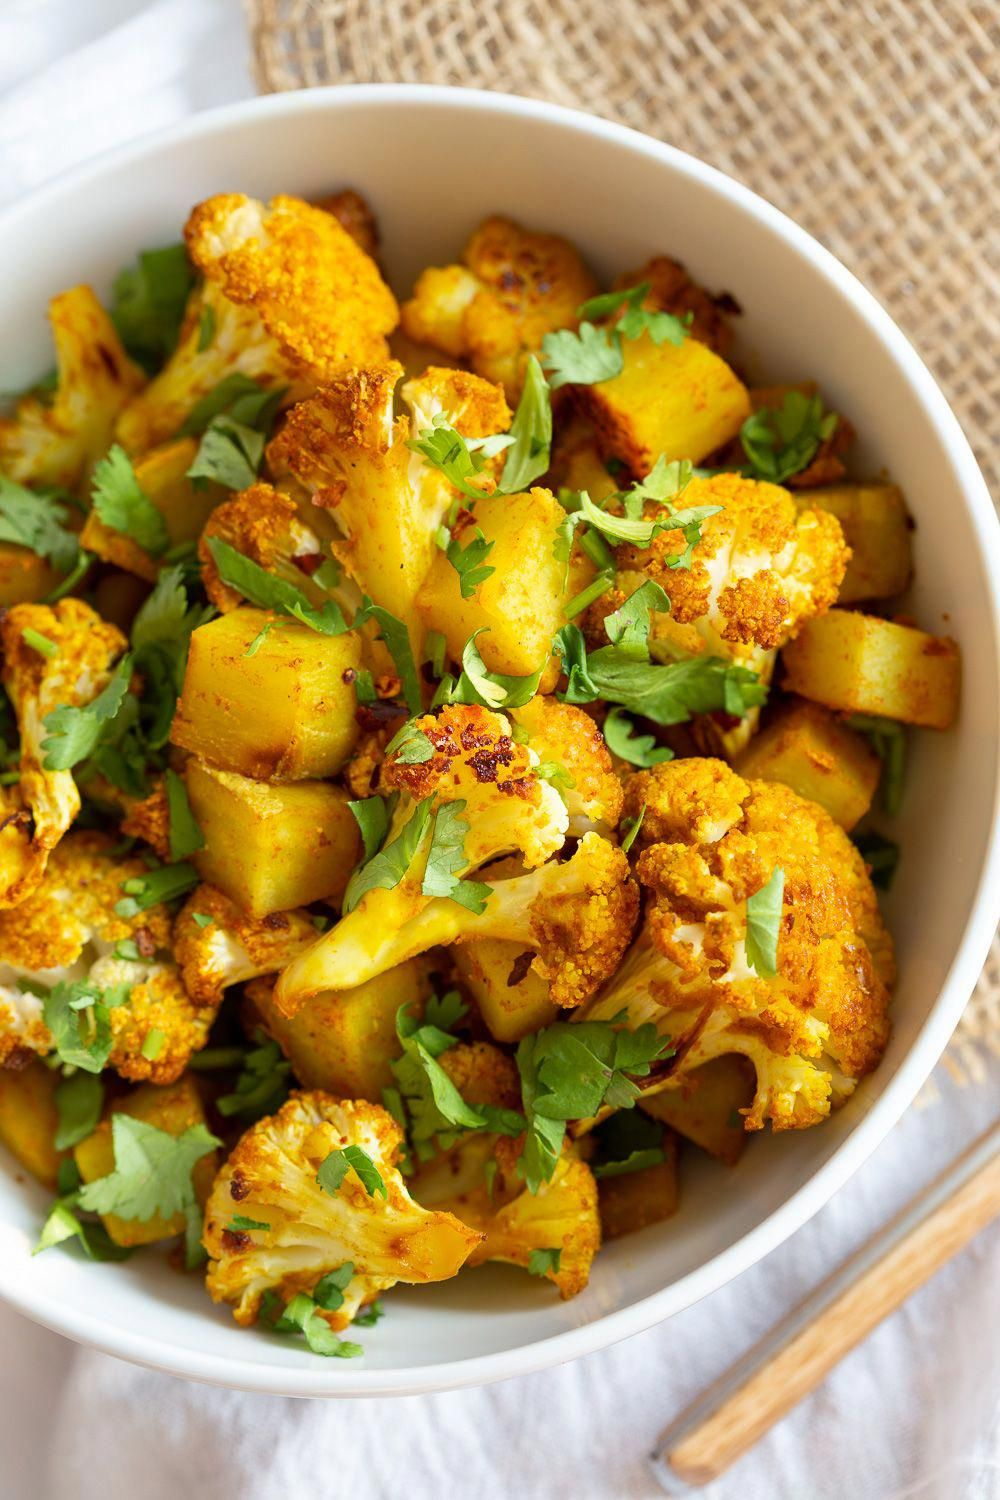 Baked Aloo Gobi - Indian Spiced Potato Cauliflower Bake. 10 Mins Active. Toss with spices, put it to bake, and done! No Standing around, no Mushy Cauliflower! Same Amazing Indian flavor and excellent texture. Tips to make the Best Aloo Gobi Subzi that bakes perfectly every time!